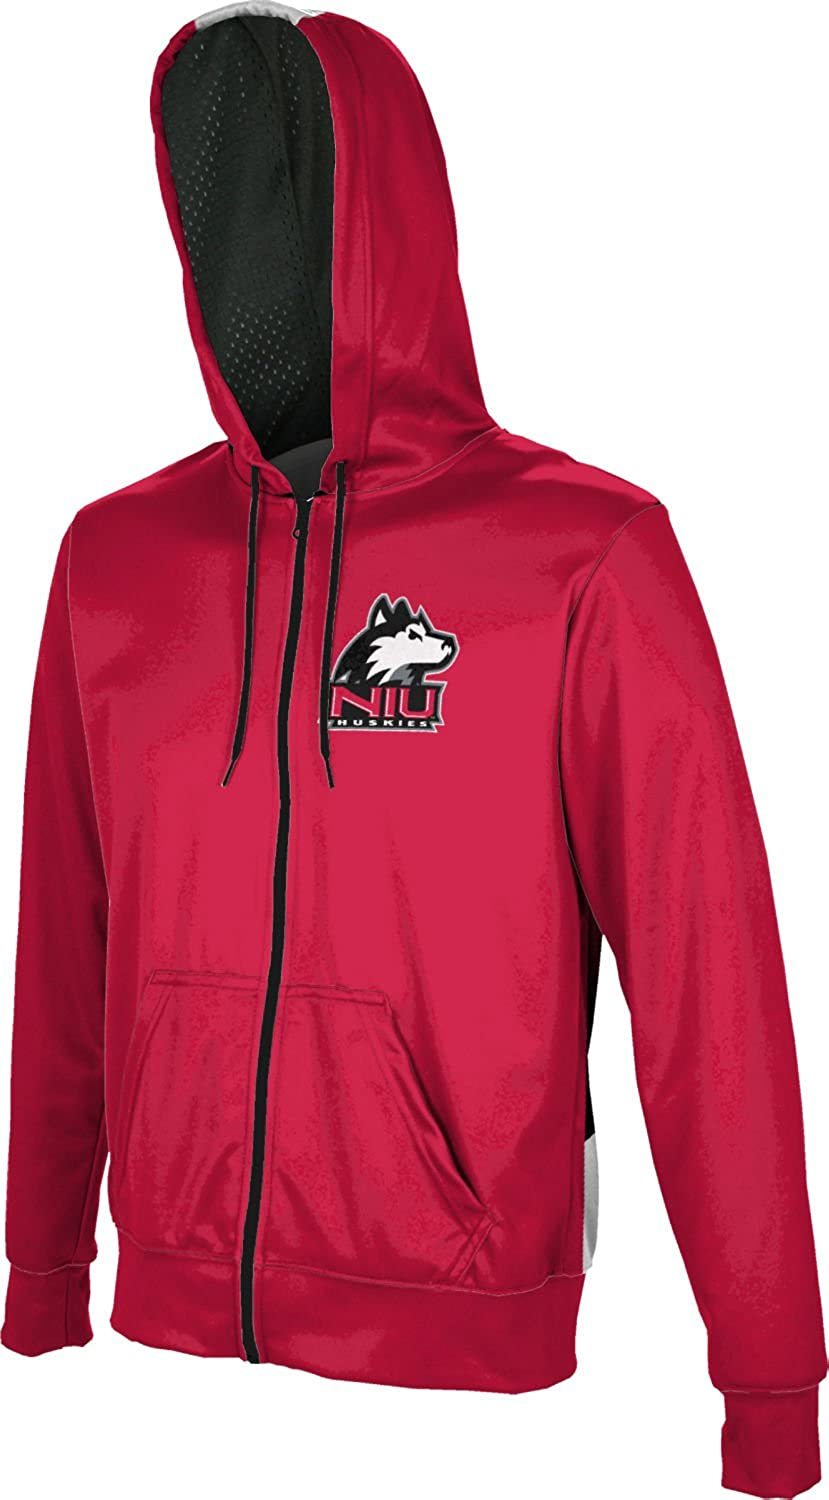 Secondskin ProSphere Northern Illinois University Boys Fullzip Hoodie